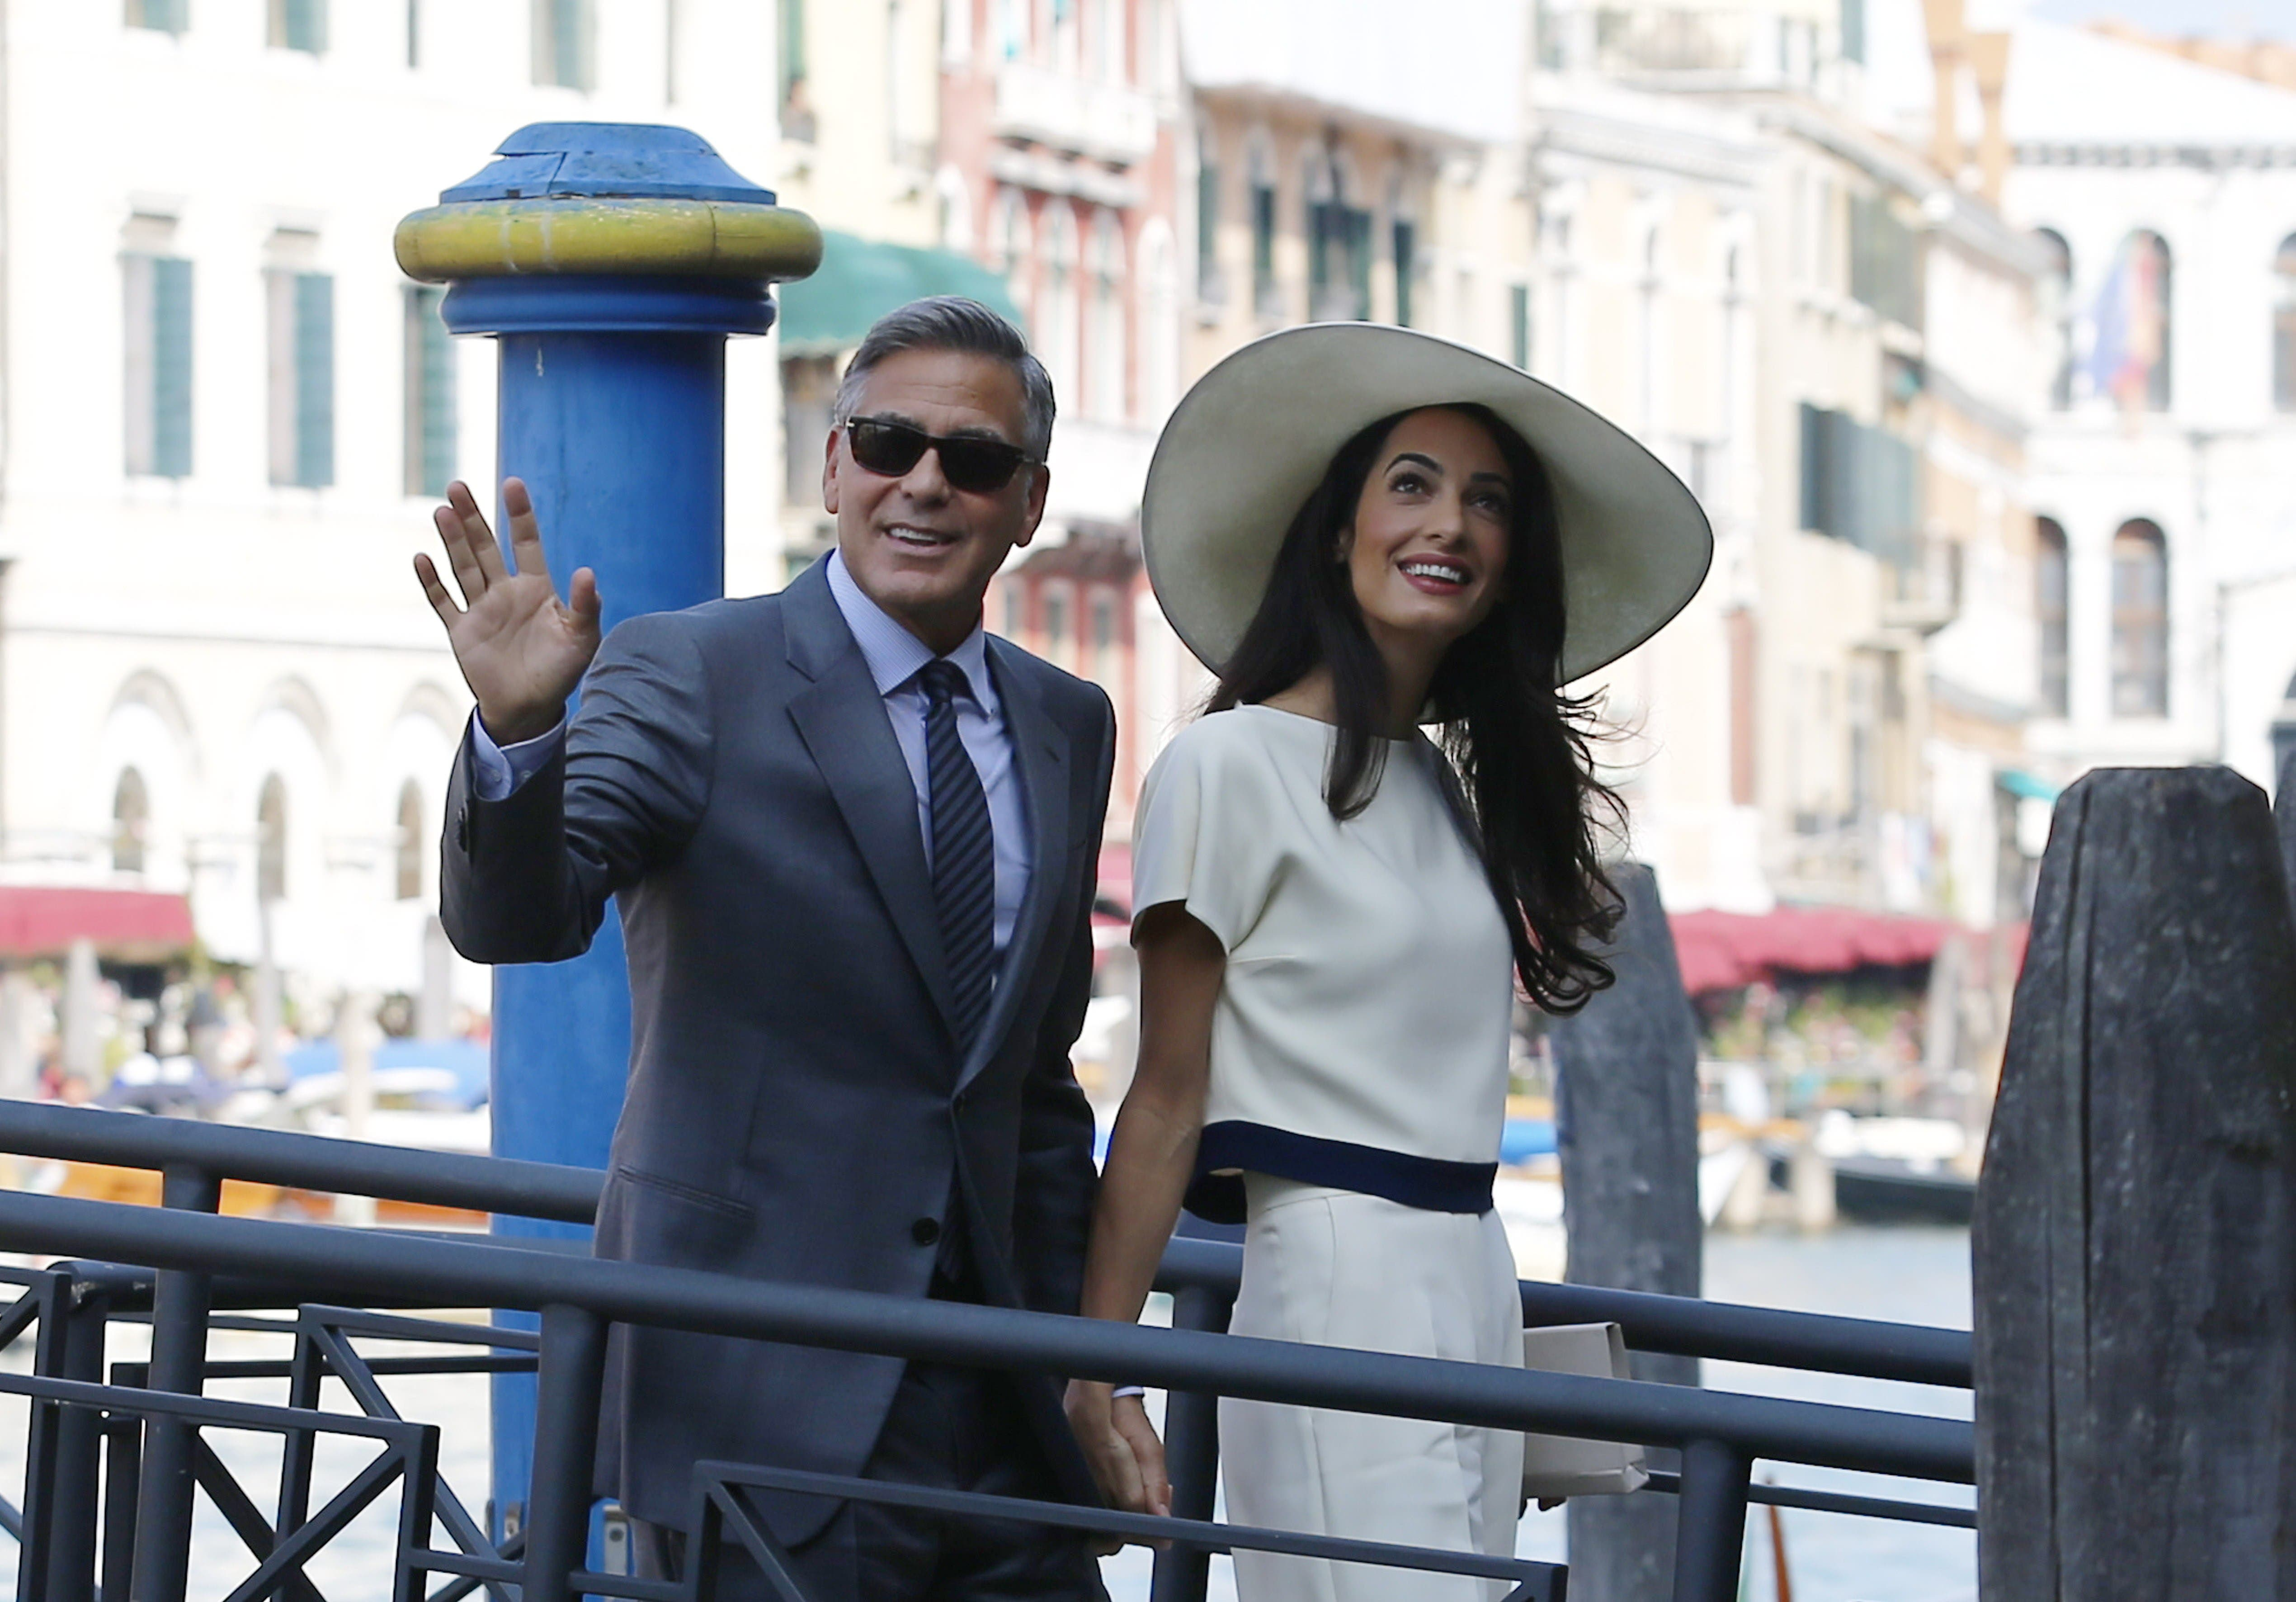 US actor George Clooney and British lawyer Amal Alamuddin arrive on September 29, 2014 at the palazzo Ca Farsetti in Venice, for a civil ceremony to officialise their wedding. AFP